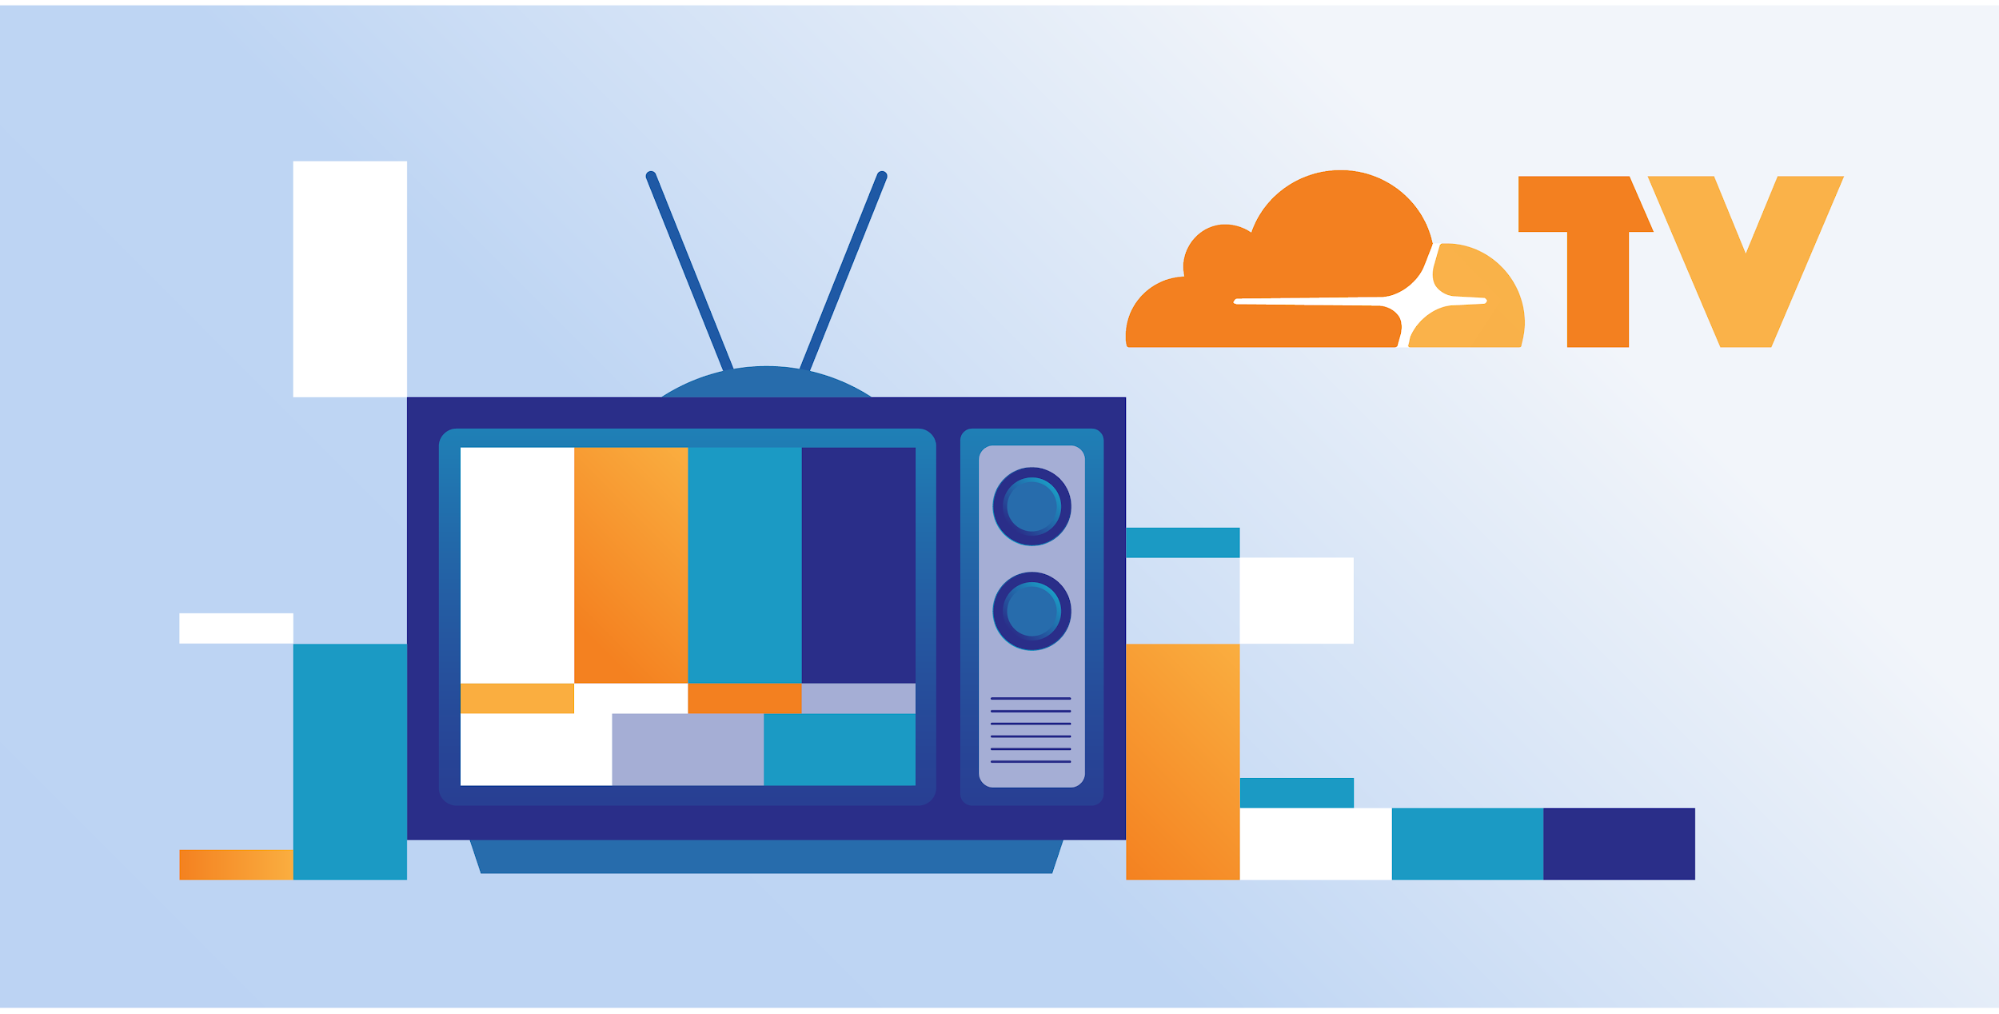 Building Cloudflare TV from scratch